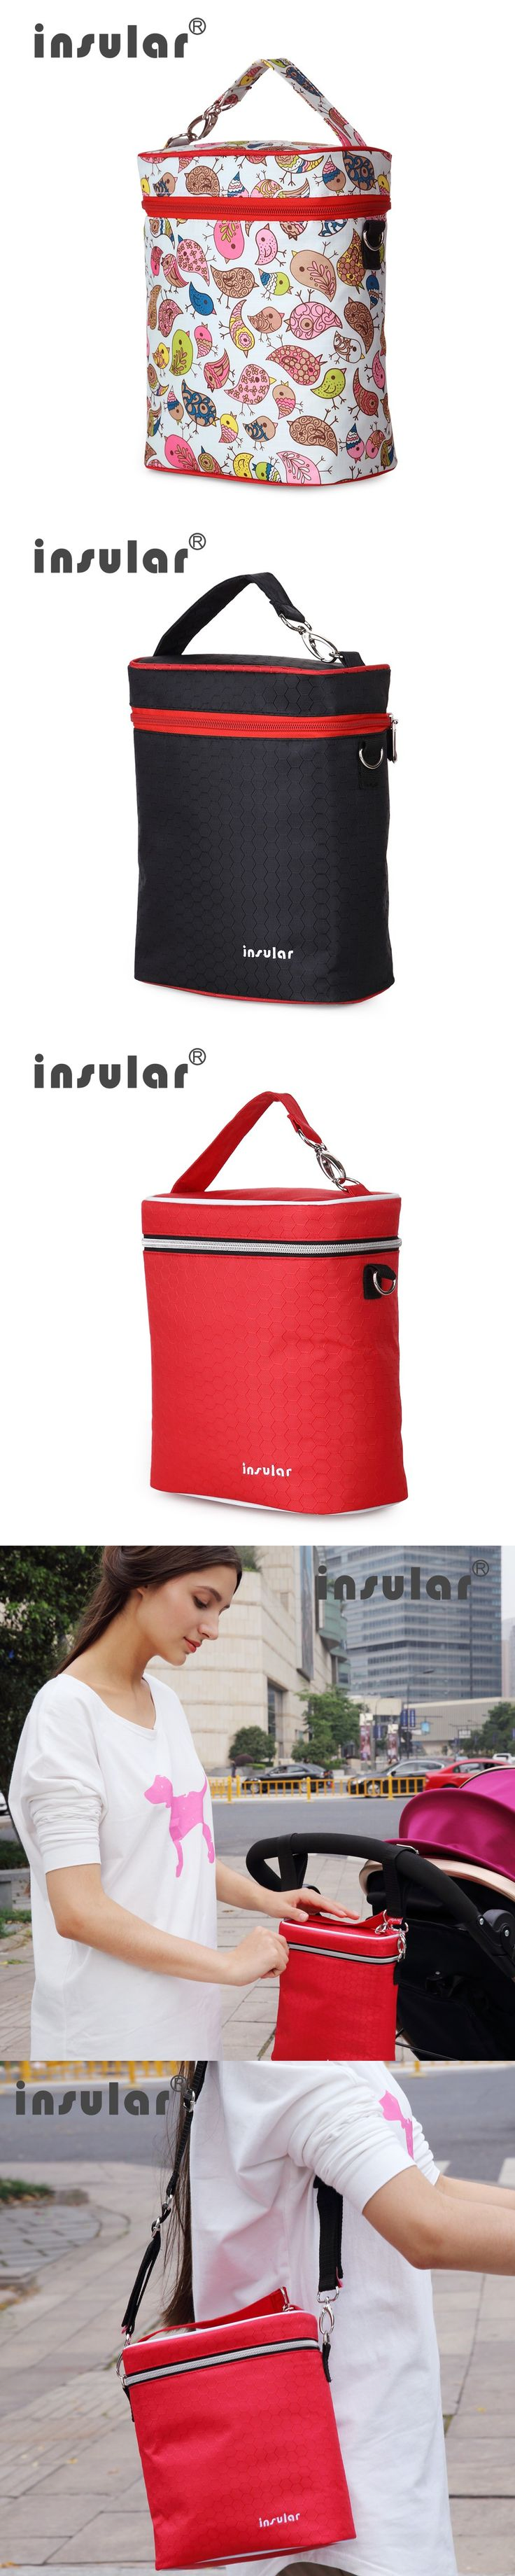 Baby Milk Bottle Insulation Bags Mummy Outside Warmer Thermal Food Organizer Mom Stroller Accessories Baby Care $10.86